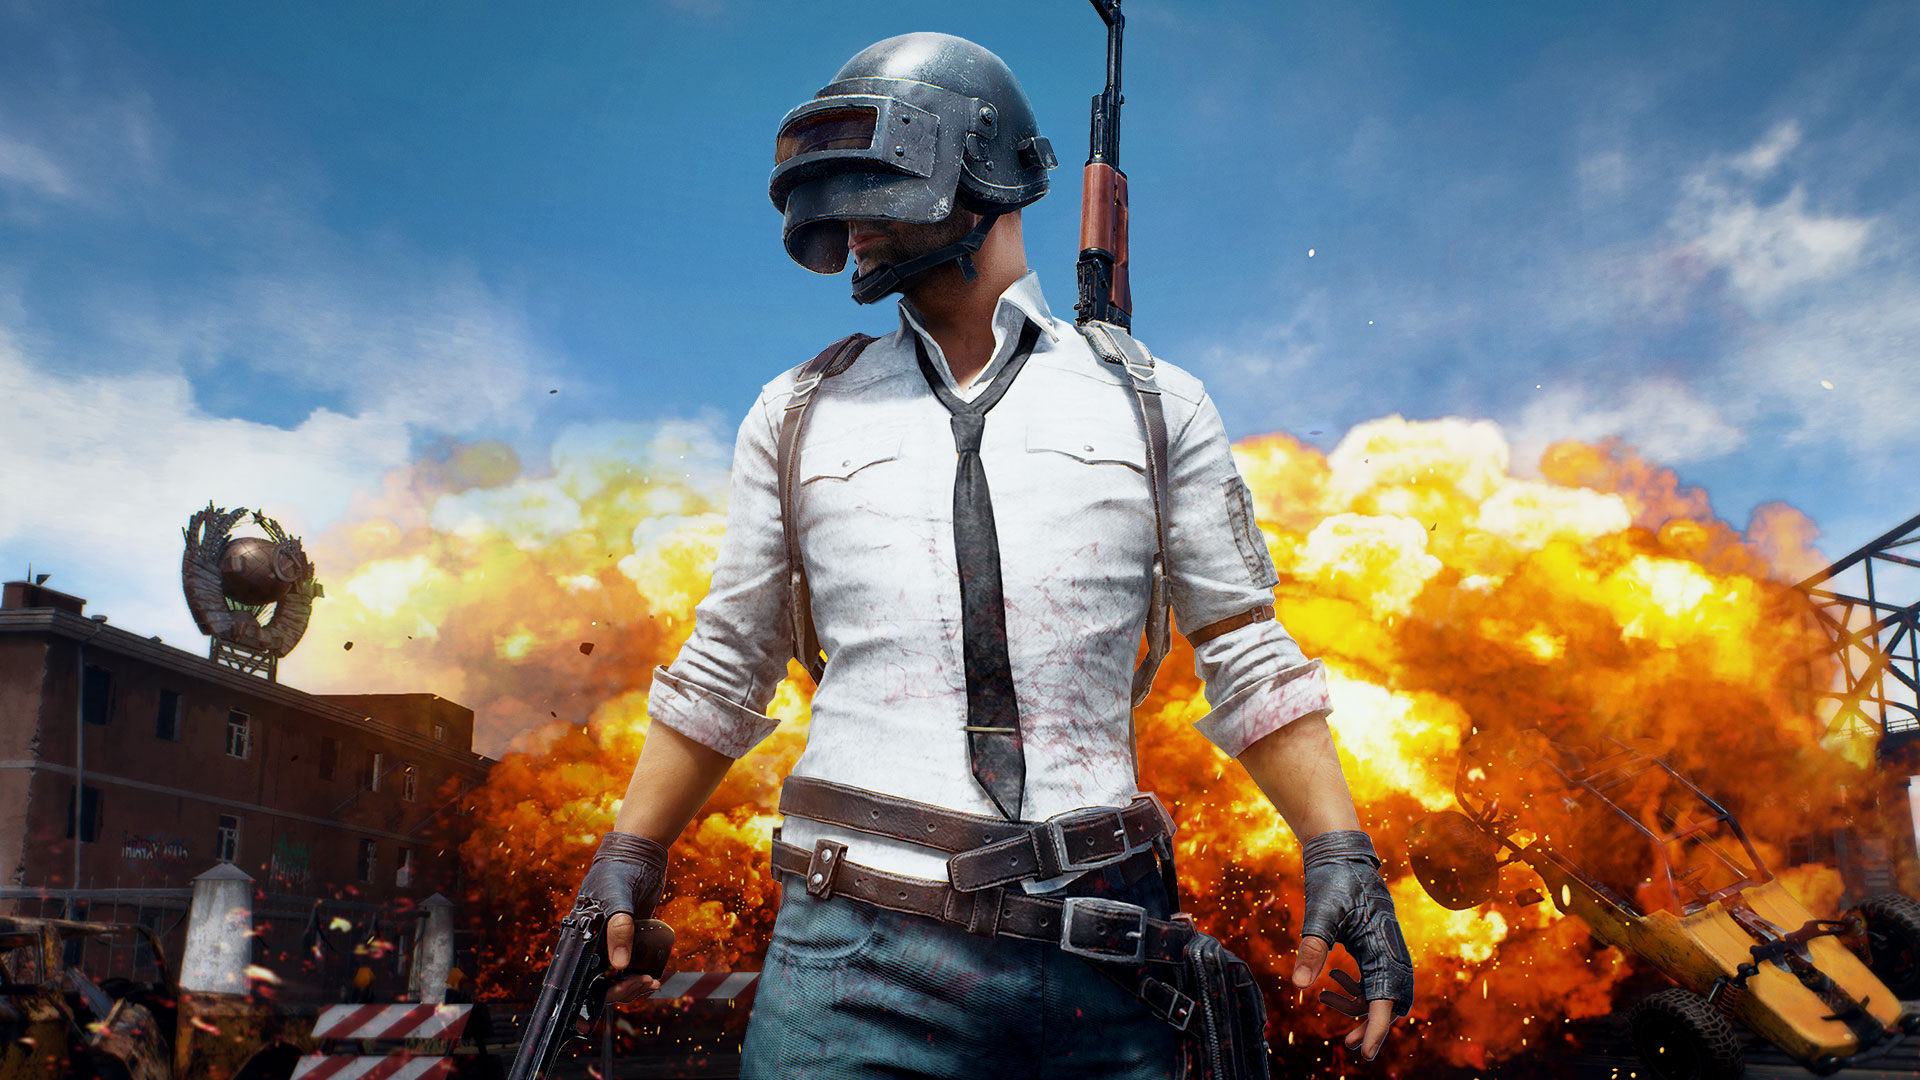 RUMOR: PlayerUnknown's Battlegrounds Icons on PS4 Servers Suggest Imminent Game Awards Announcement